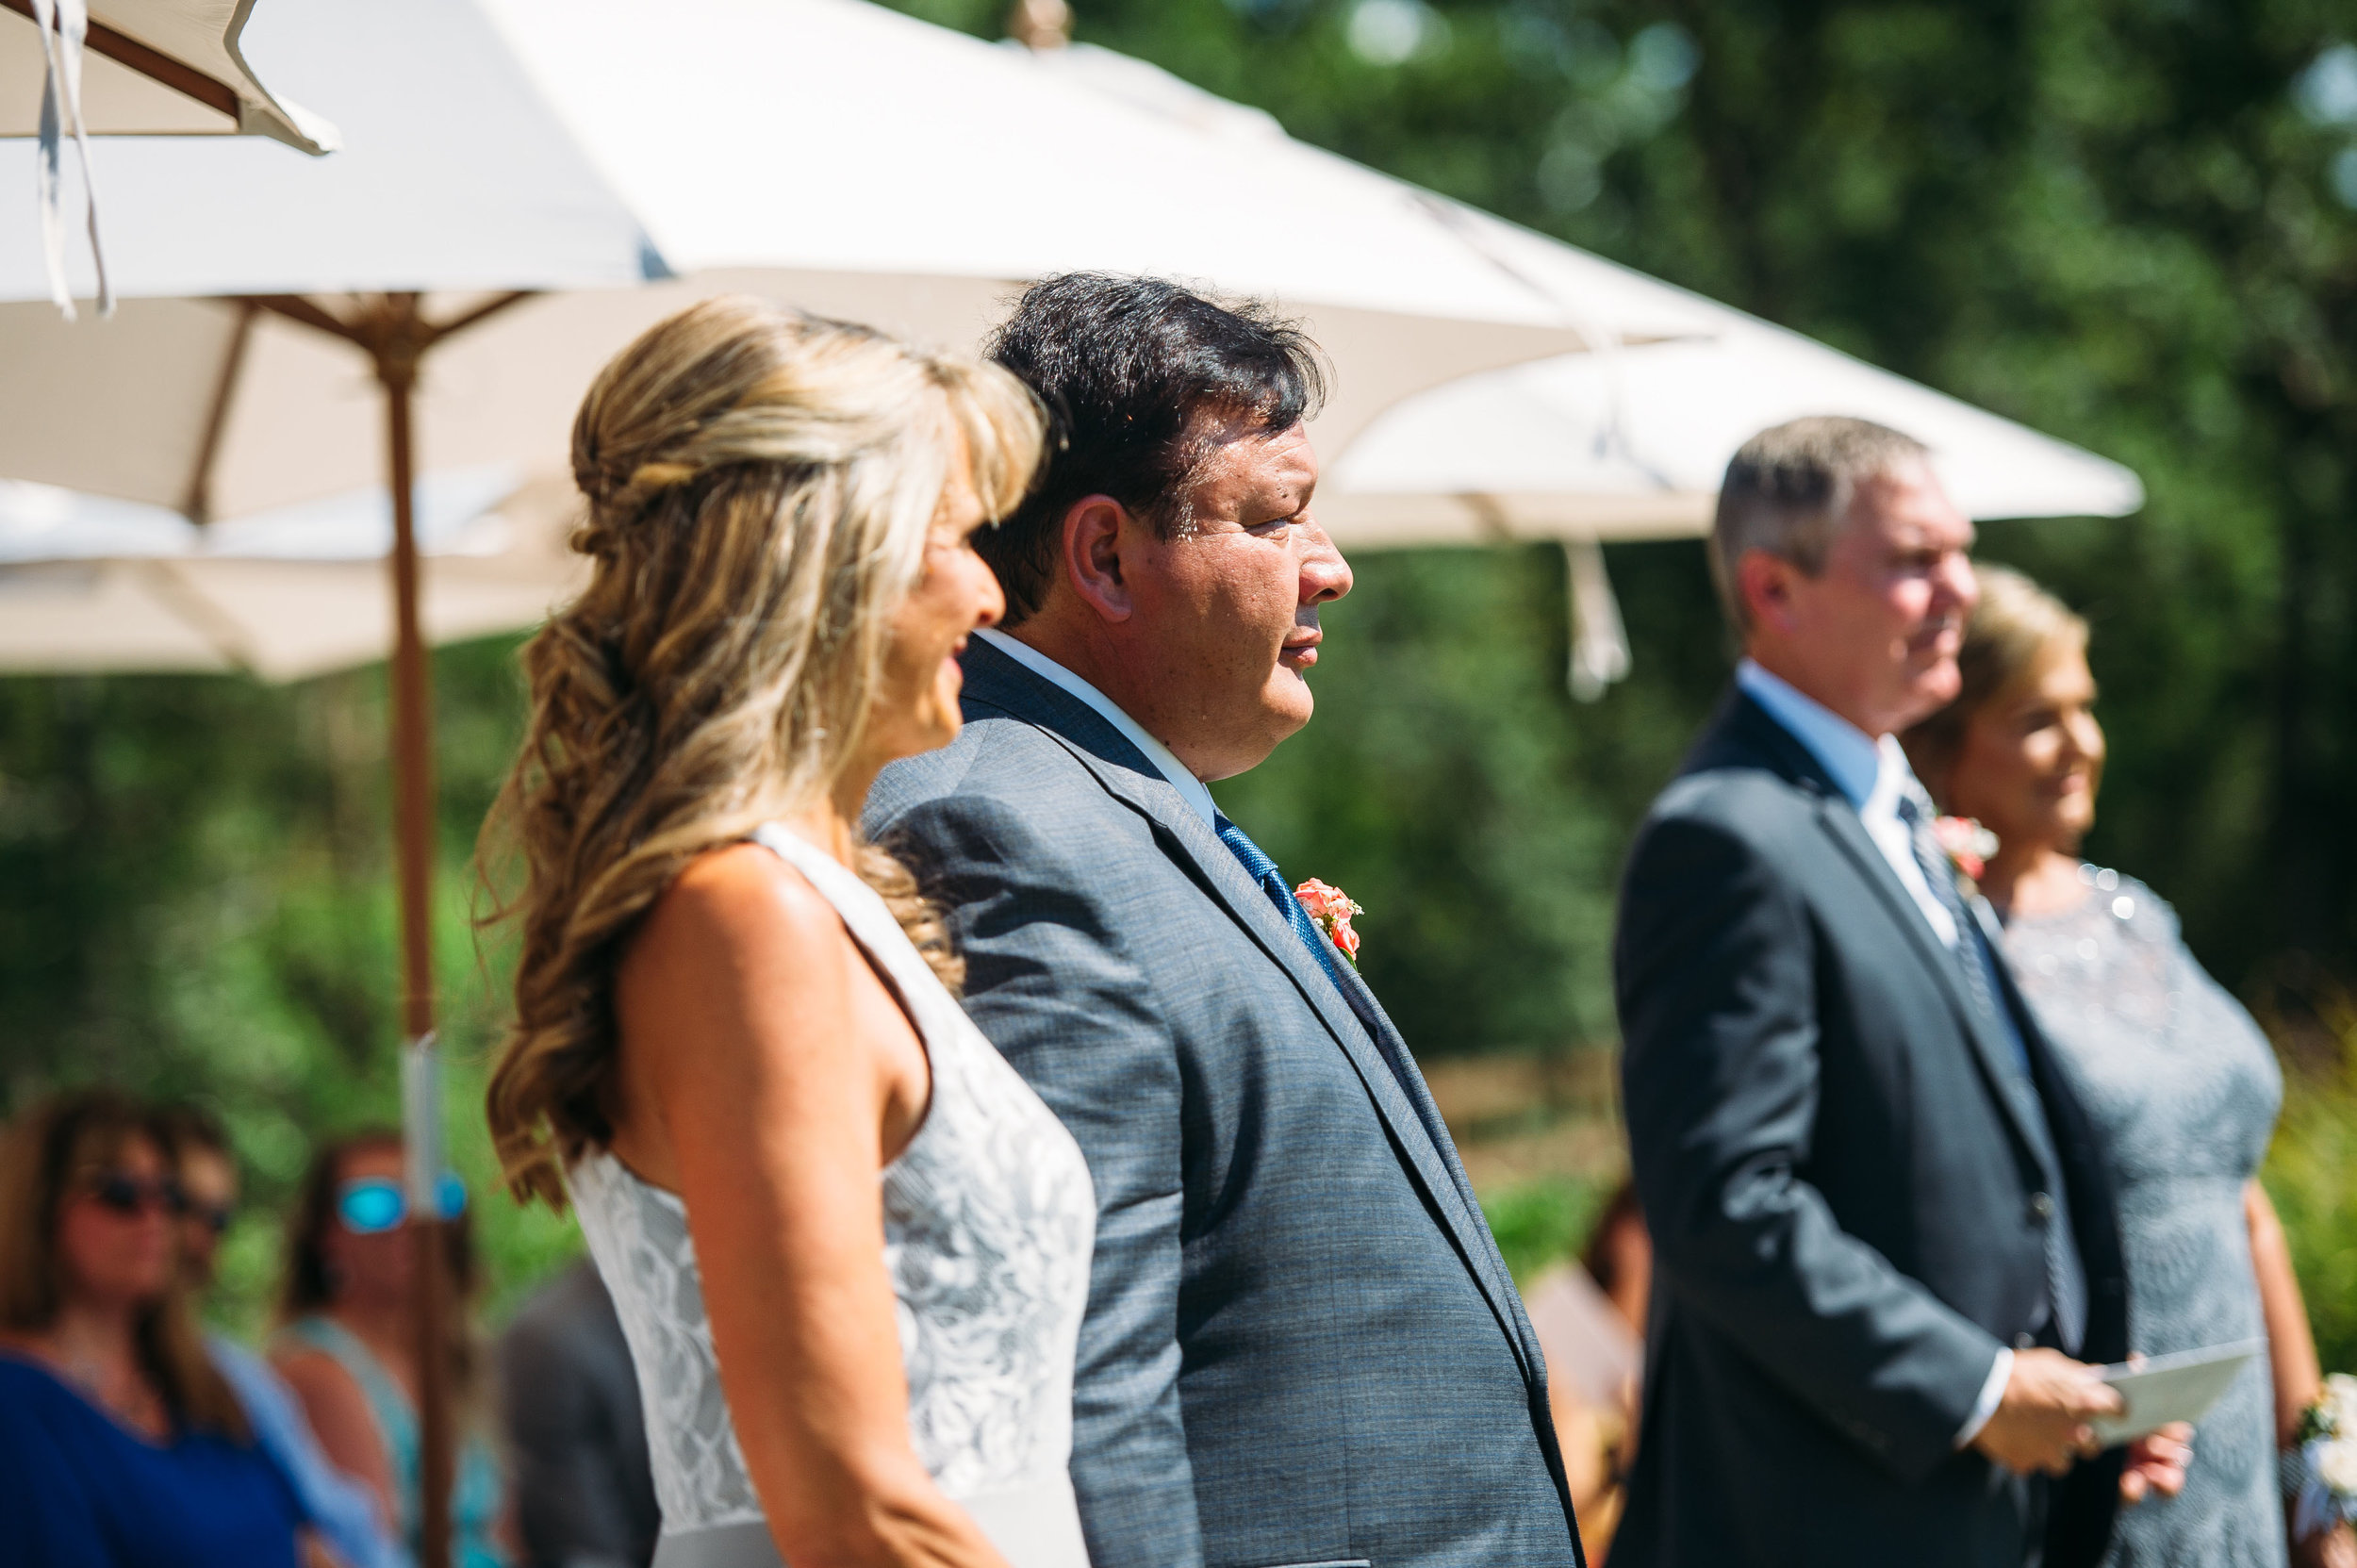 Cameron-Price-Peach-Creek-Ranch-Wedding-Ceremony-Bridals-Engagement-College-Station-Photographer-Videographer-San-Angel-Photo-00-0142.jpg